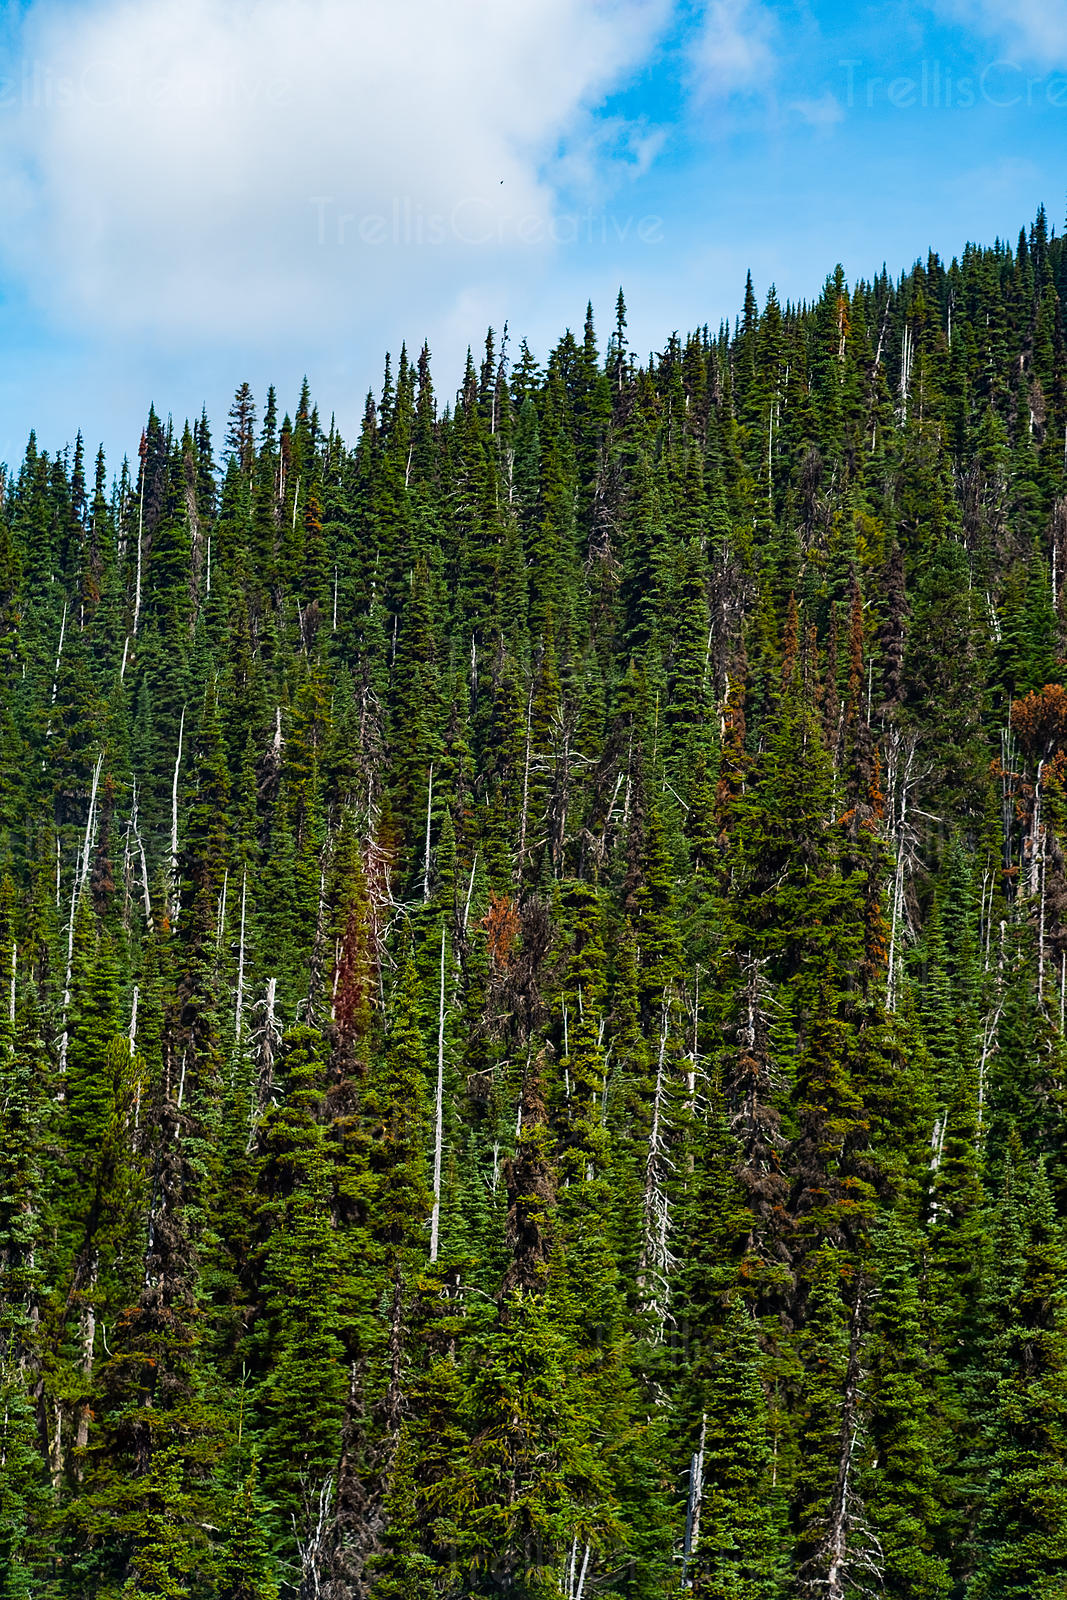 Forest on mountainside, Blackcomb Mountain, Whistler, Canada.